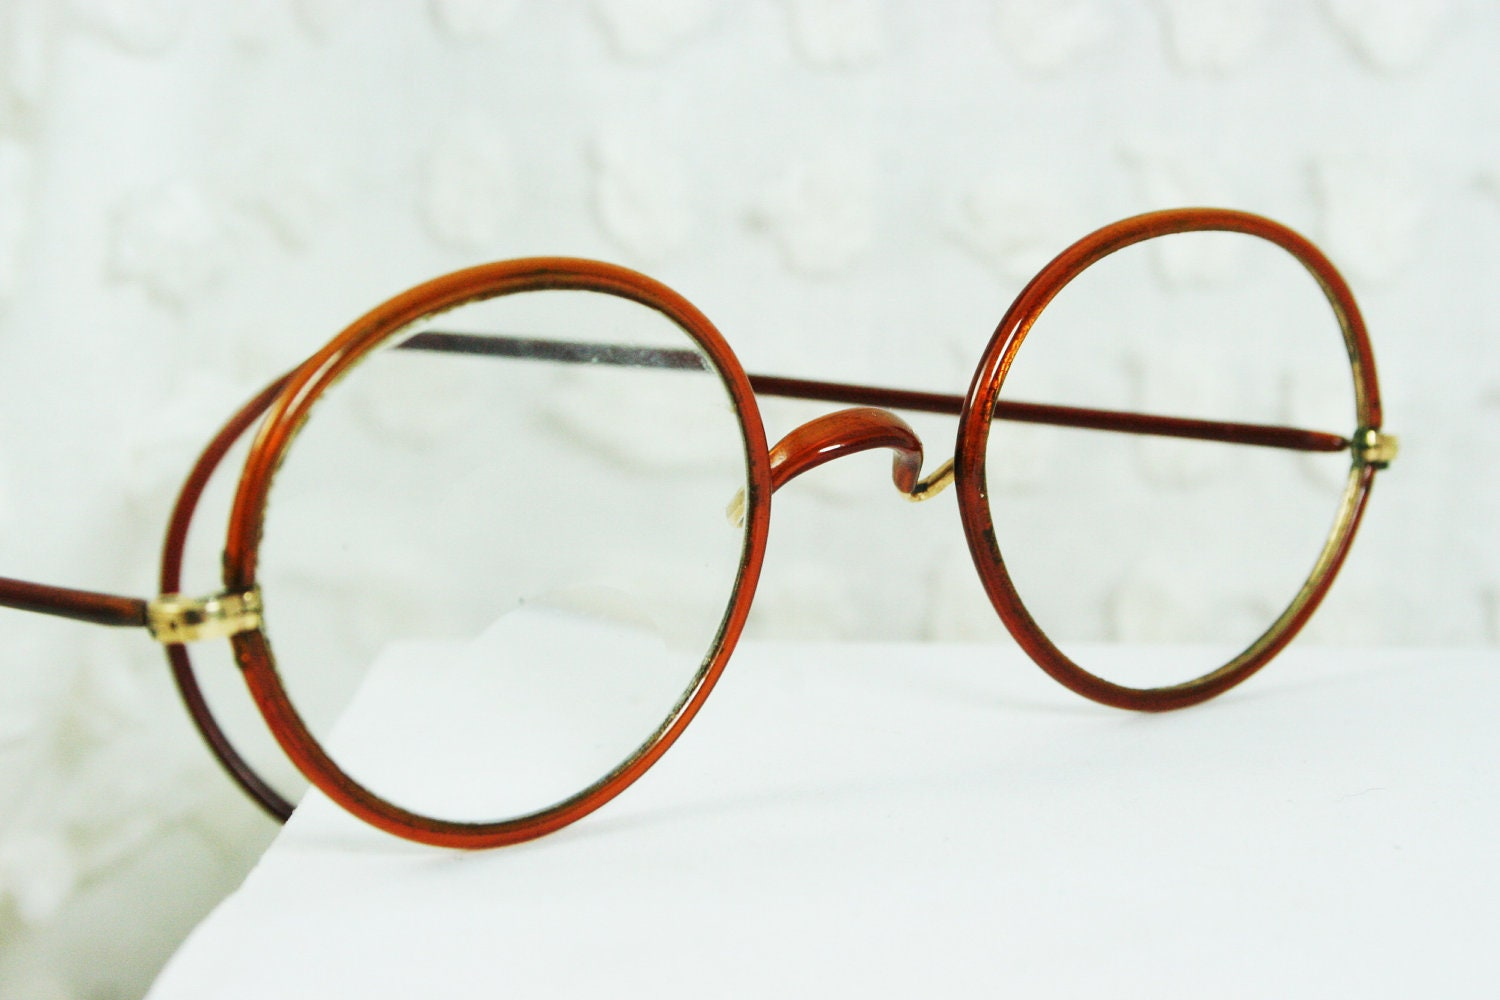 Glasses Frames With Cable Temples : 30s Eyeglasses 1930s Round Glasses Butterscotch by DIAeyewear